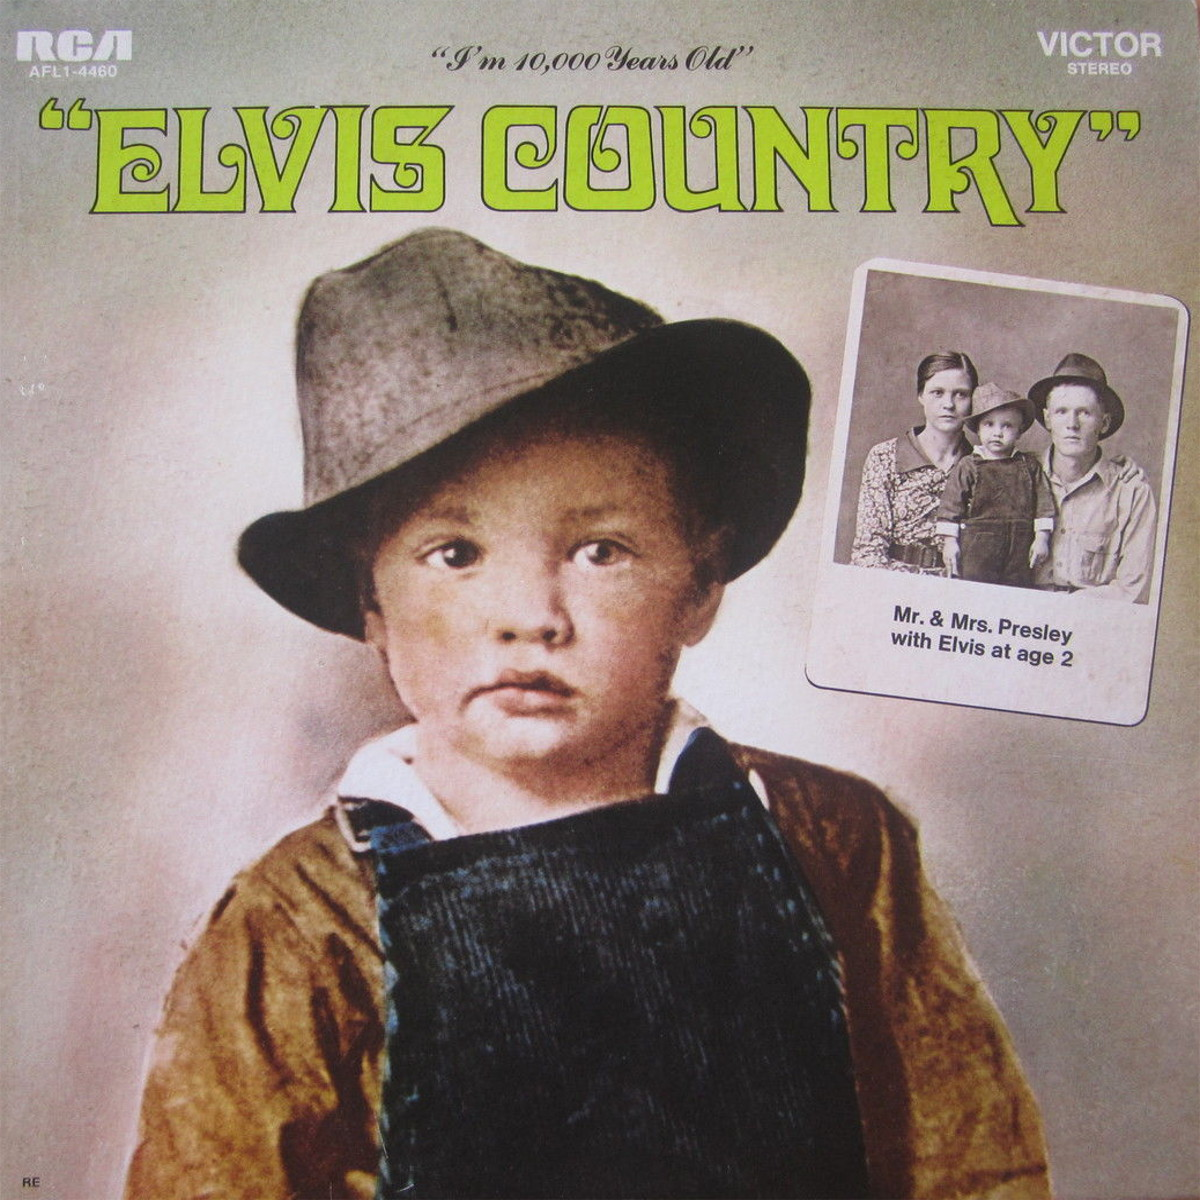 ELVIS COUNTRY Afl1-4460akwkay